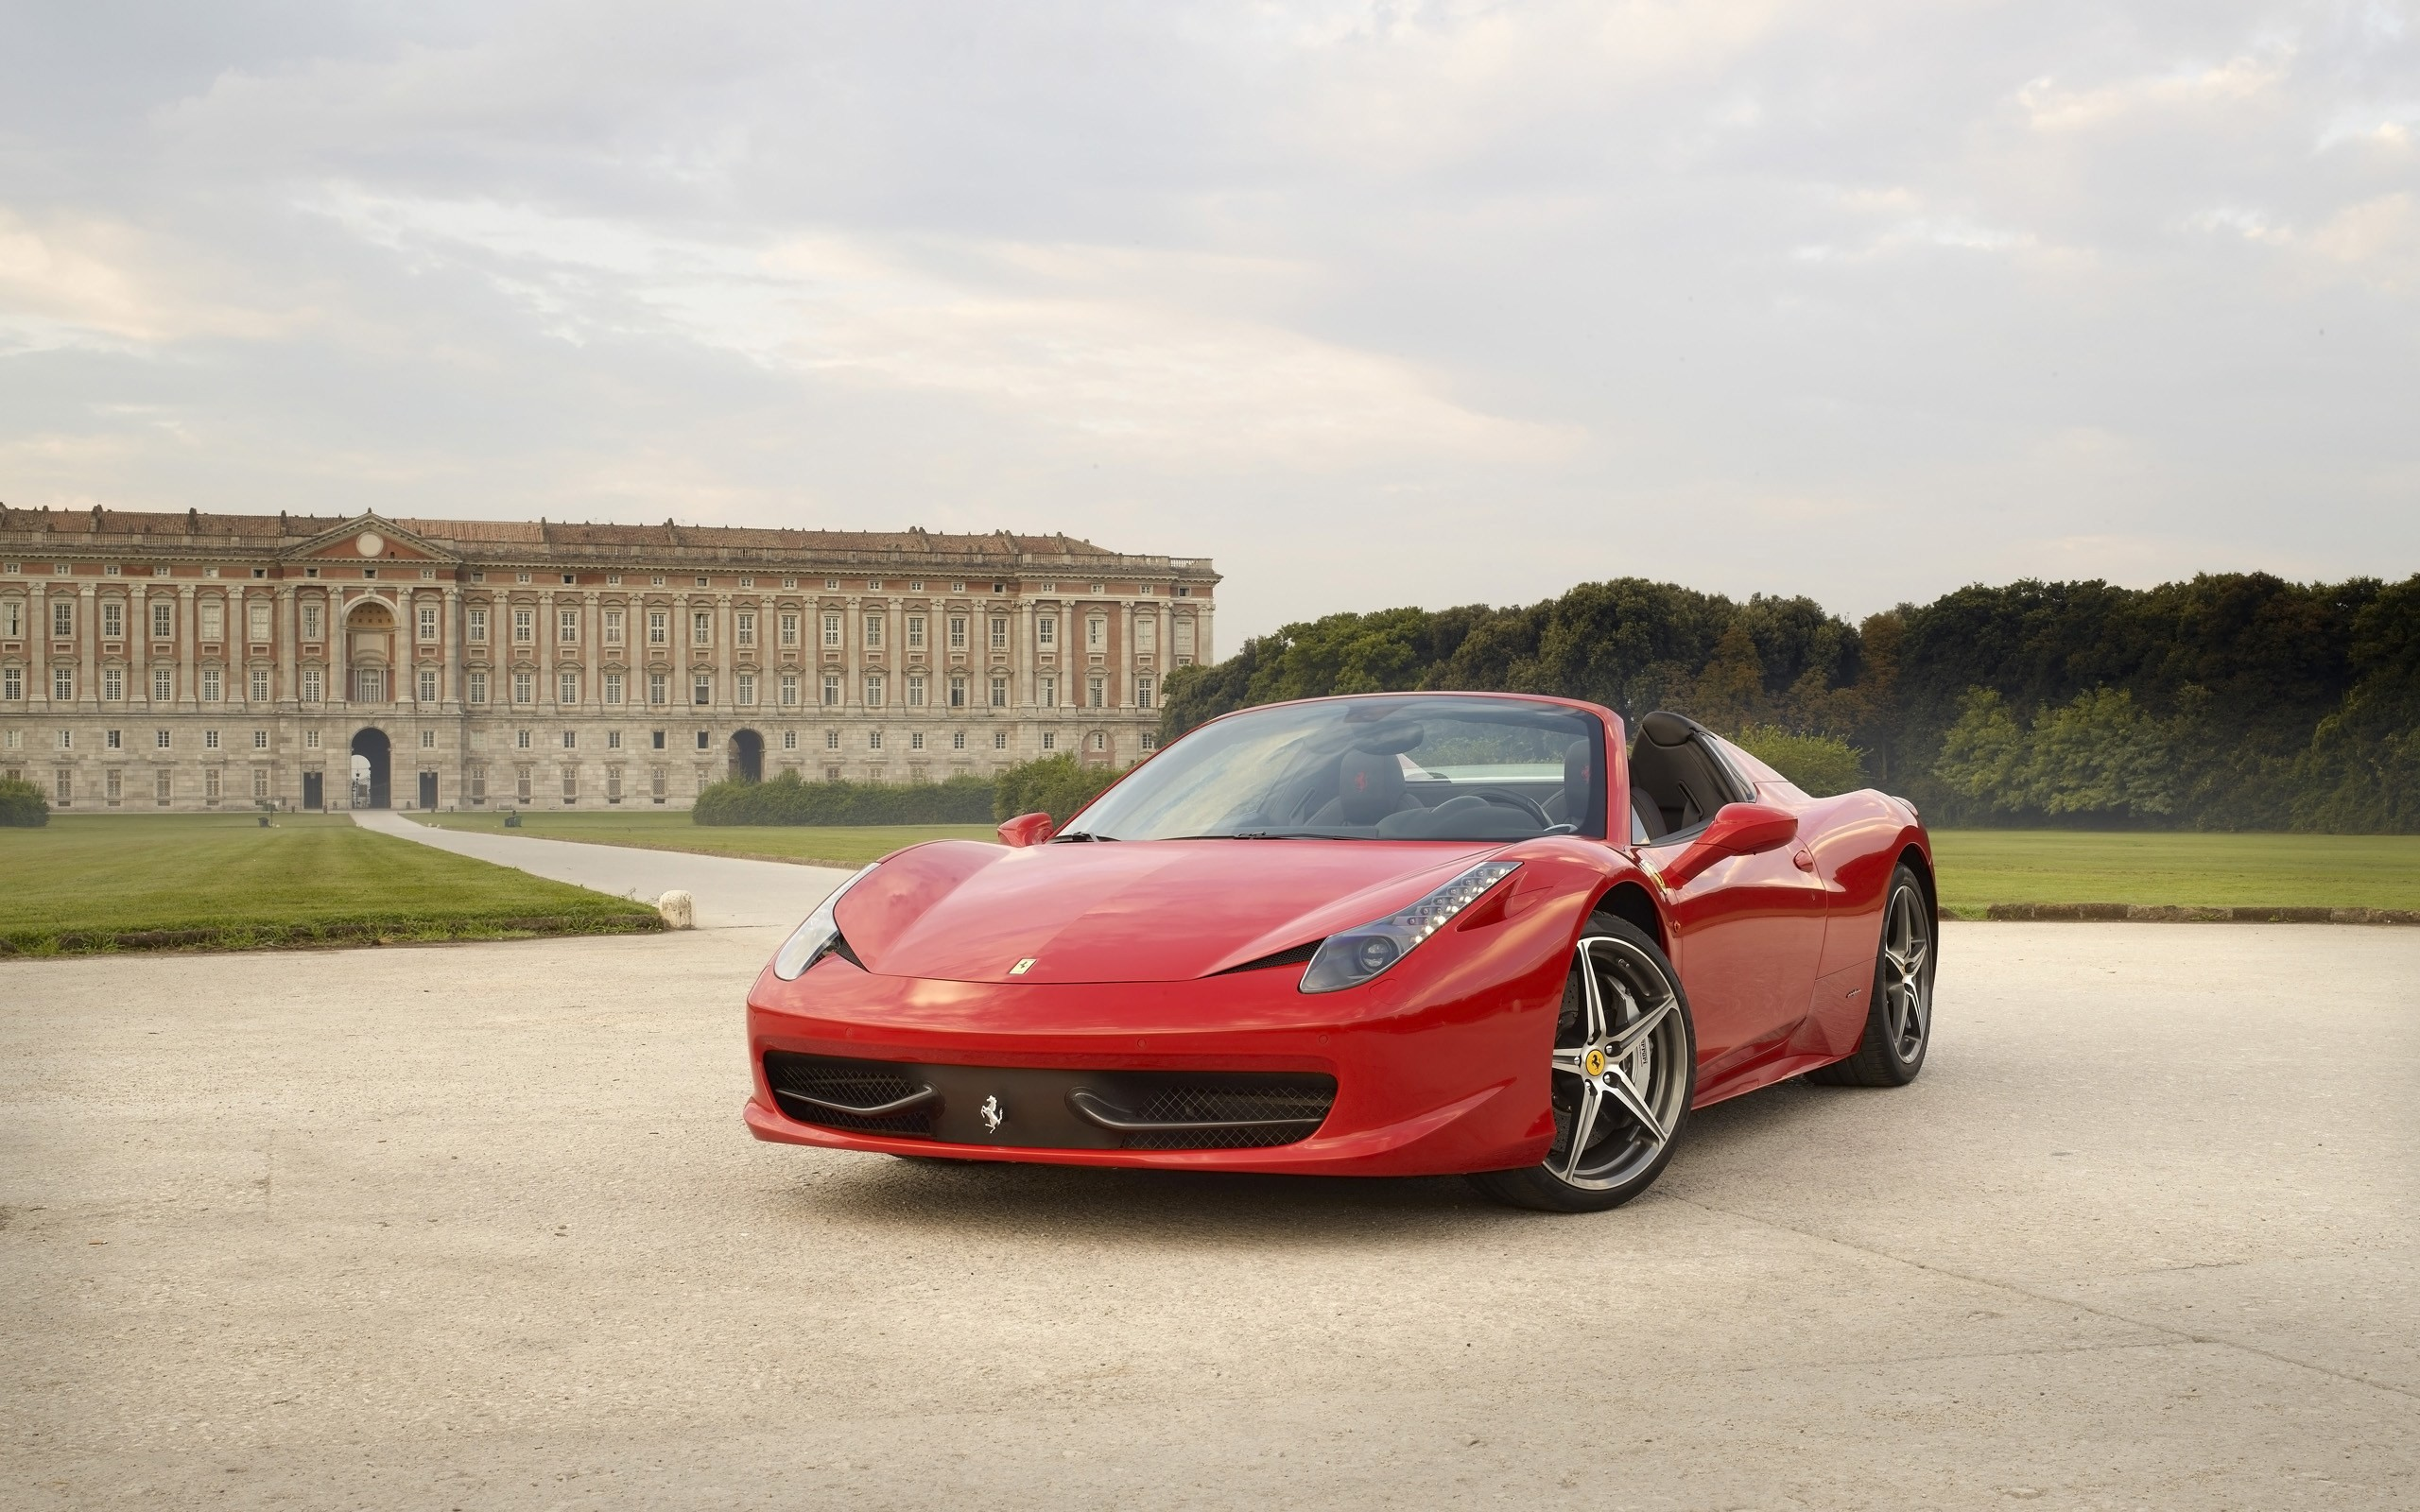 Ferrari 458 Italia Wallpaper Hd 75 Pictures